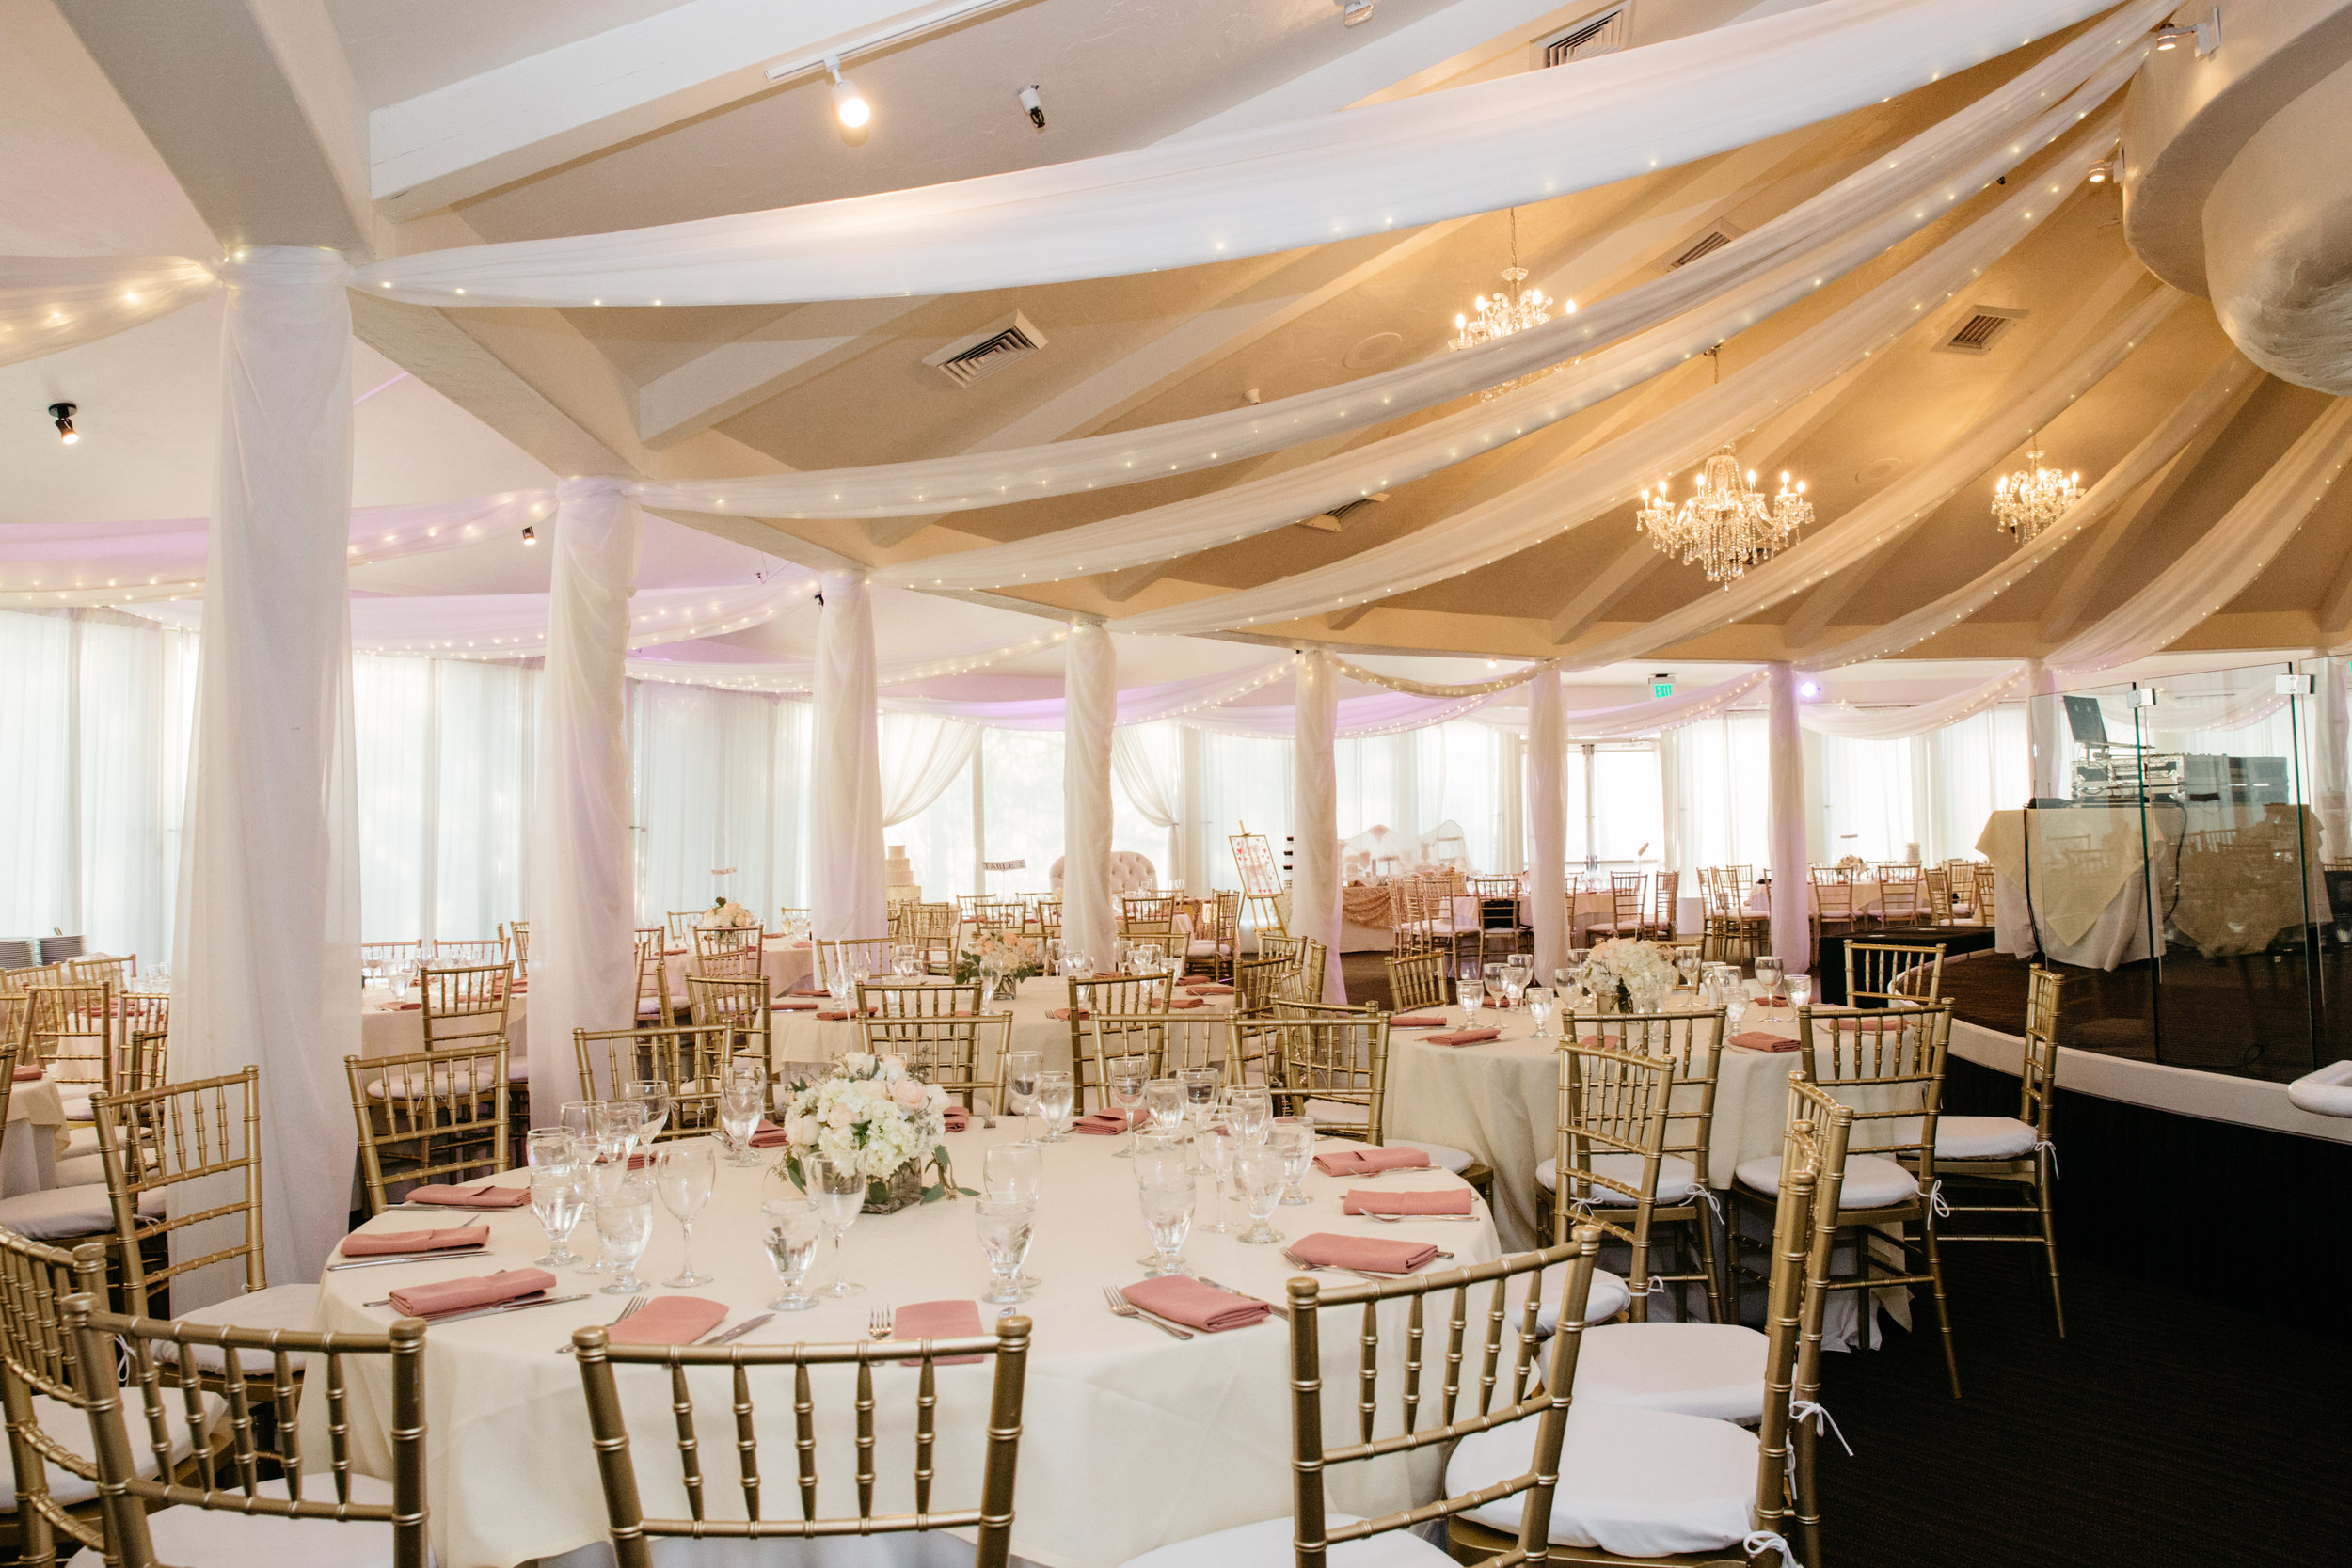 The Vineyard Wedding Jenna Bells and Laces Photography-24.jpg